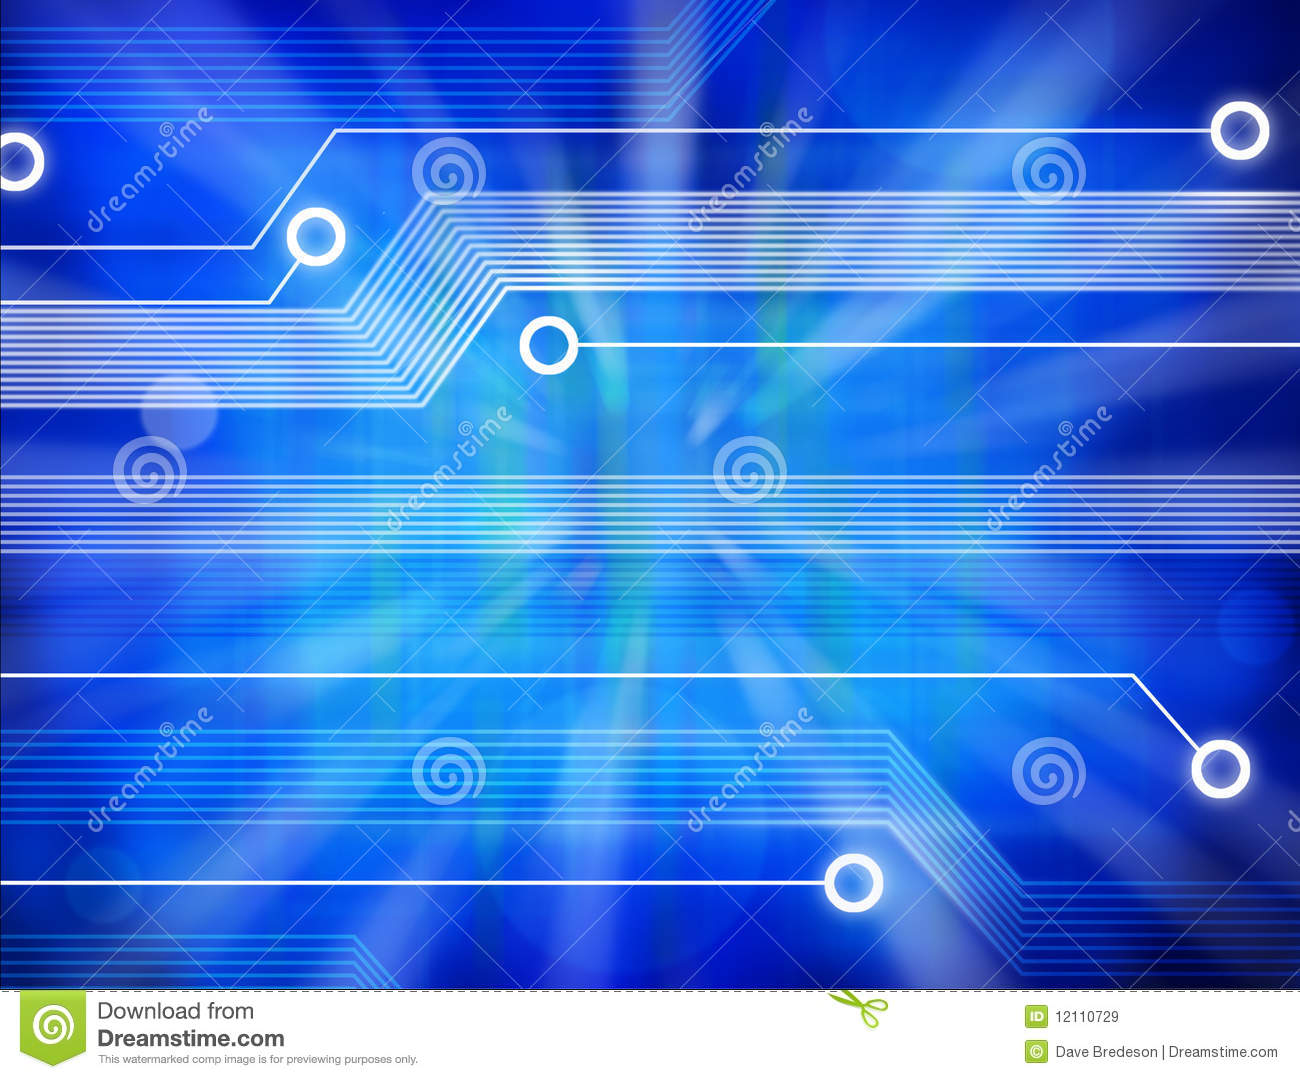 Technology Abstract Background Stock Illustration: Computer Technology Abstract Background Stock Illustration